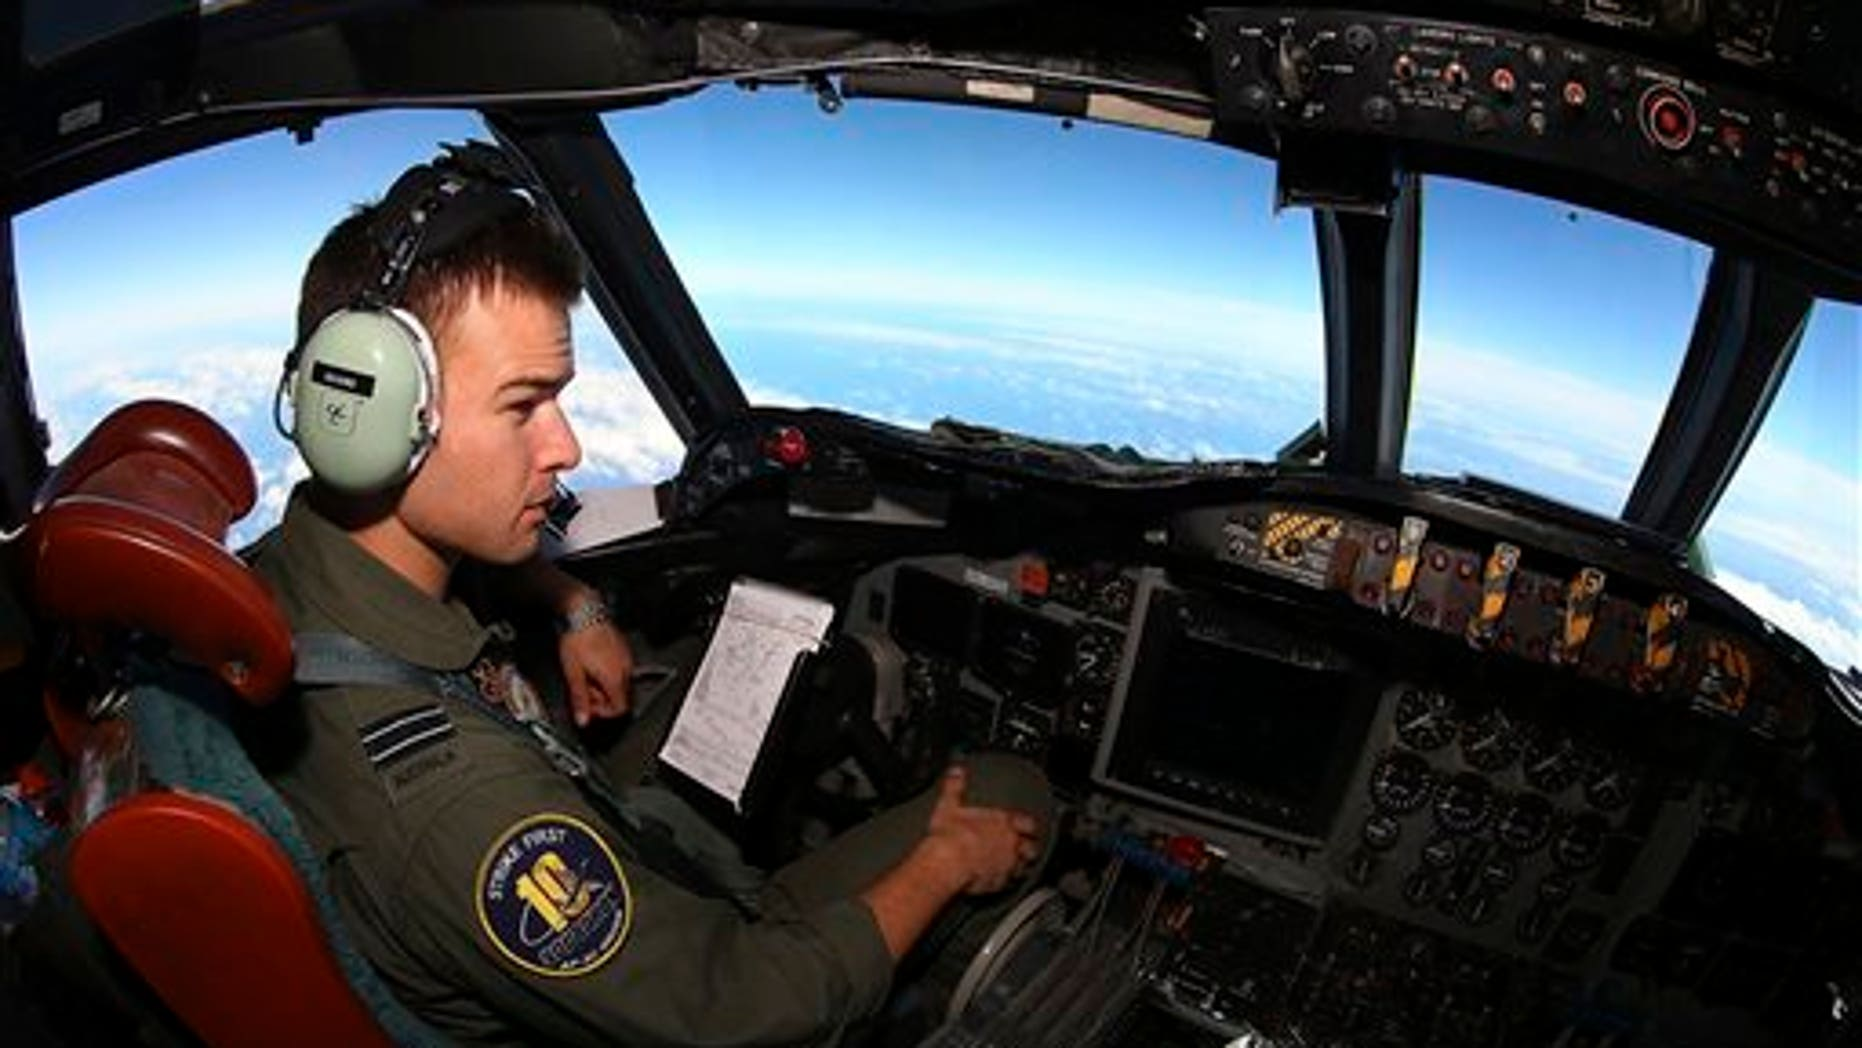 """In this Wednesday, March 26, 2014 photo, Flight Lt. Russell Adams looks out from the cockpit on board a Royal Australian Air Force AP-3C Orion, during a search for the missing Malaysia Airlines Flight 370 in the southern Indian Ocean. A French satellite scanning the Indian Ocean for remnants of the missing jetliner found a possible plane debris field containing 122 objects, a top Malaysian official said Wednesday, calling it """"the most credible lead that we have."""" (AP Photo/Paul Kane, Pool)"""